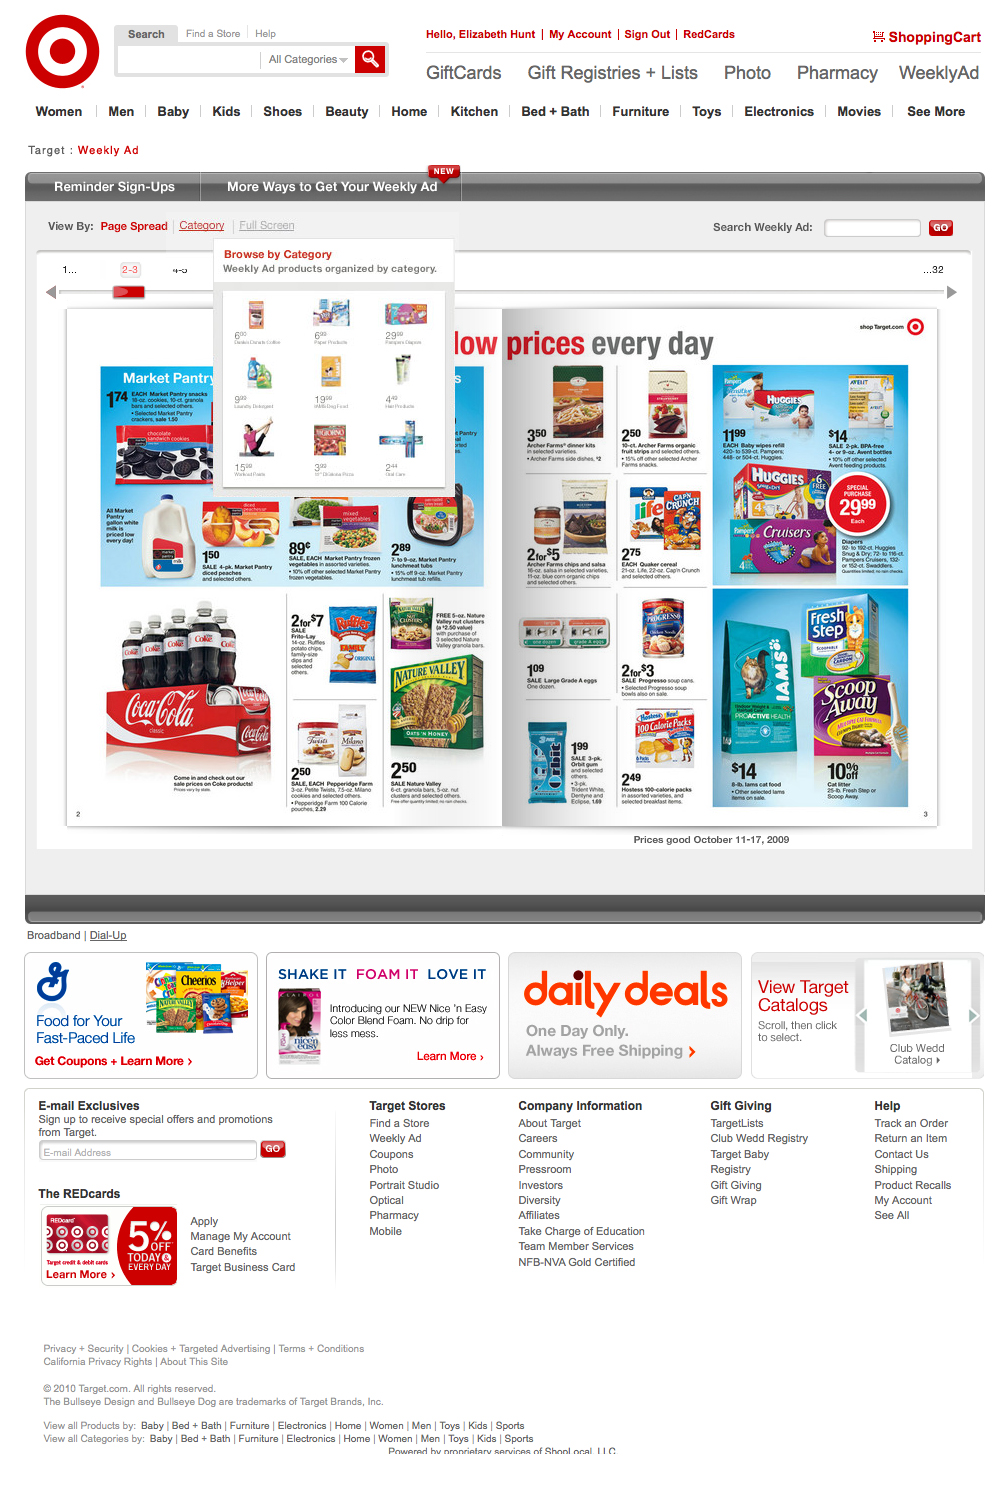 Browse by Page Spread